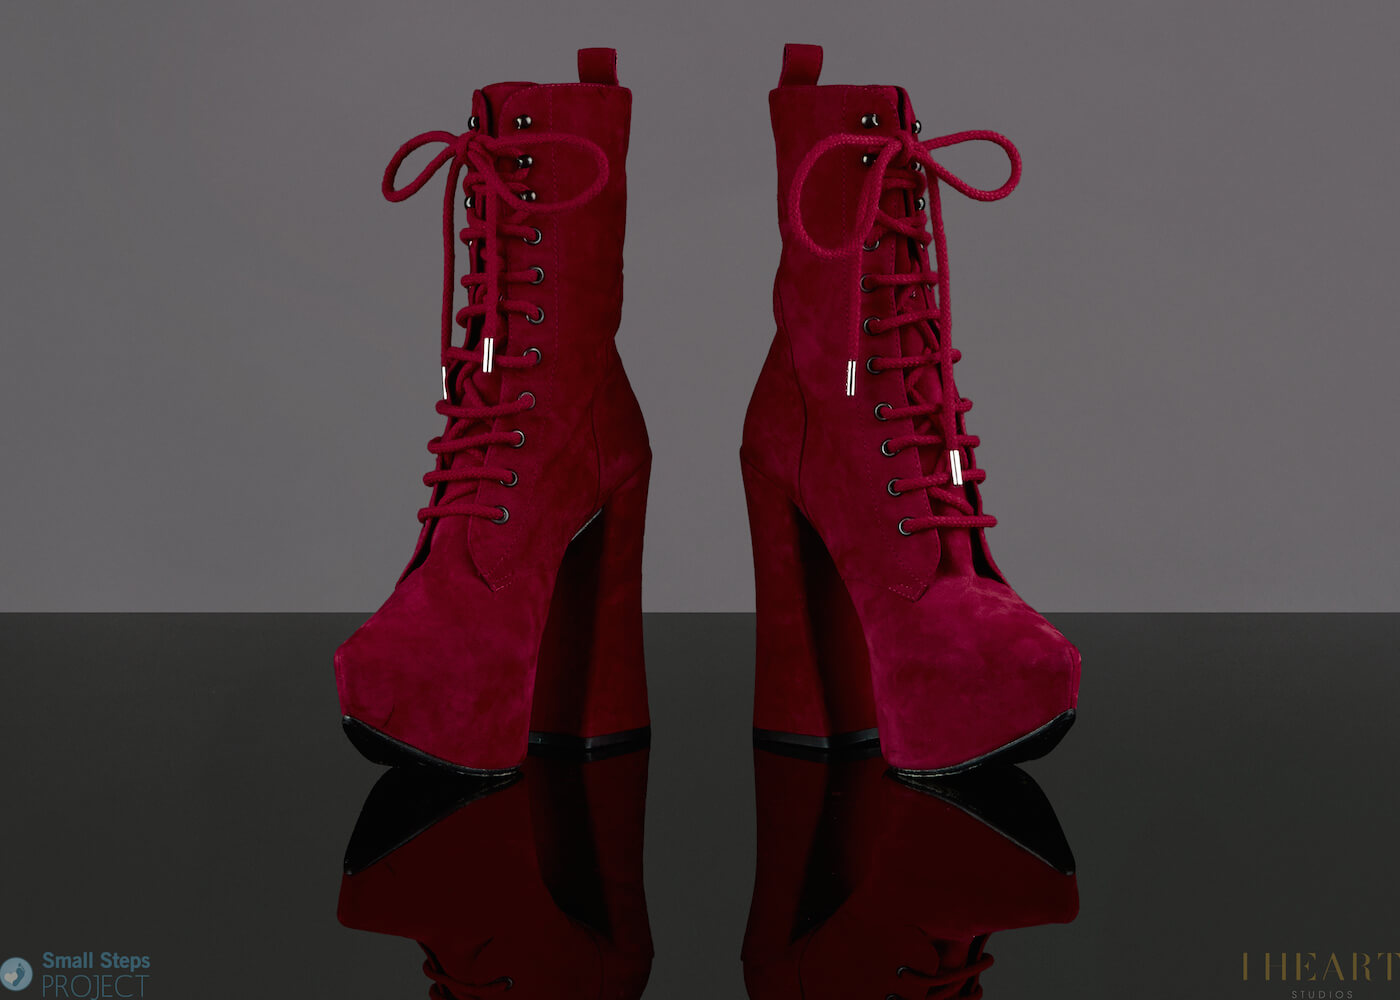 2014 Vivienne donated a pair of boots from her AW 13/14 collection, and they are a size 39.